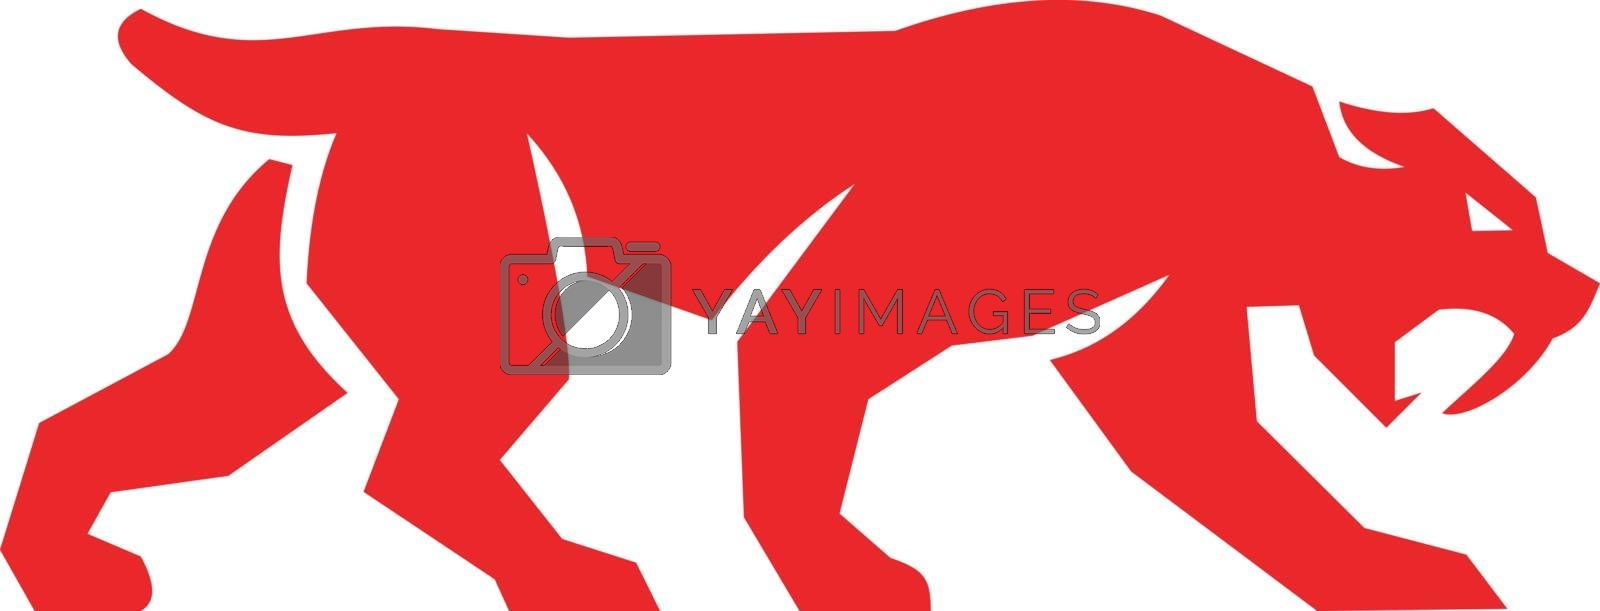 Illustration of a saber tooth tiger or sabre-tooth cat with long, curved saber-shaped canine teeth of which the best known genera is Smilodon silhouette walking viewed from the side set on isolated white background done in retro style.